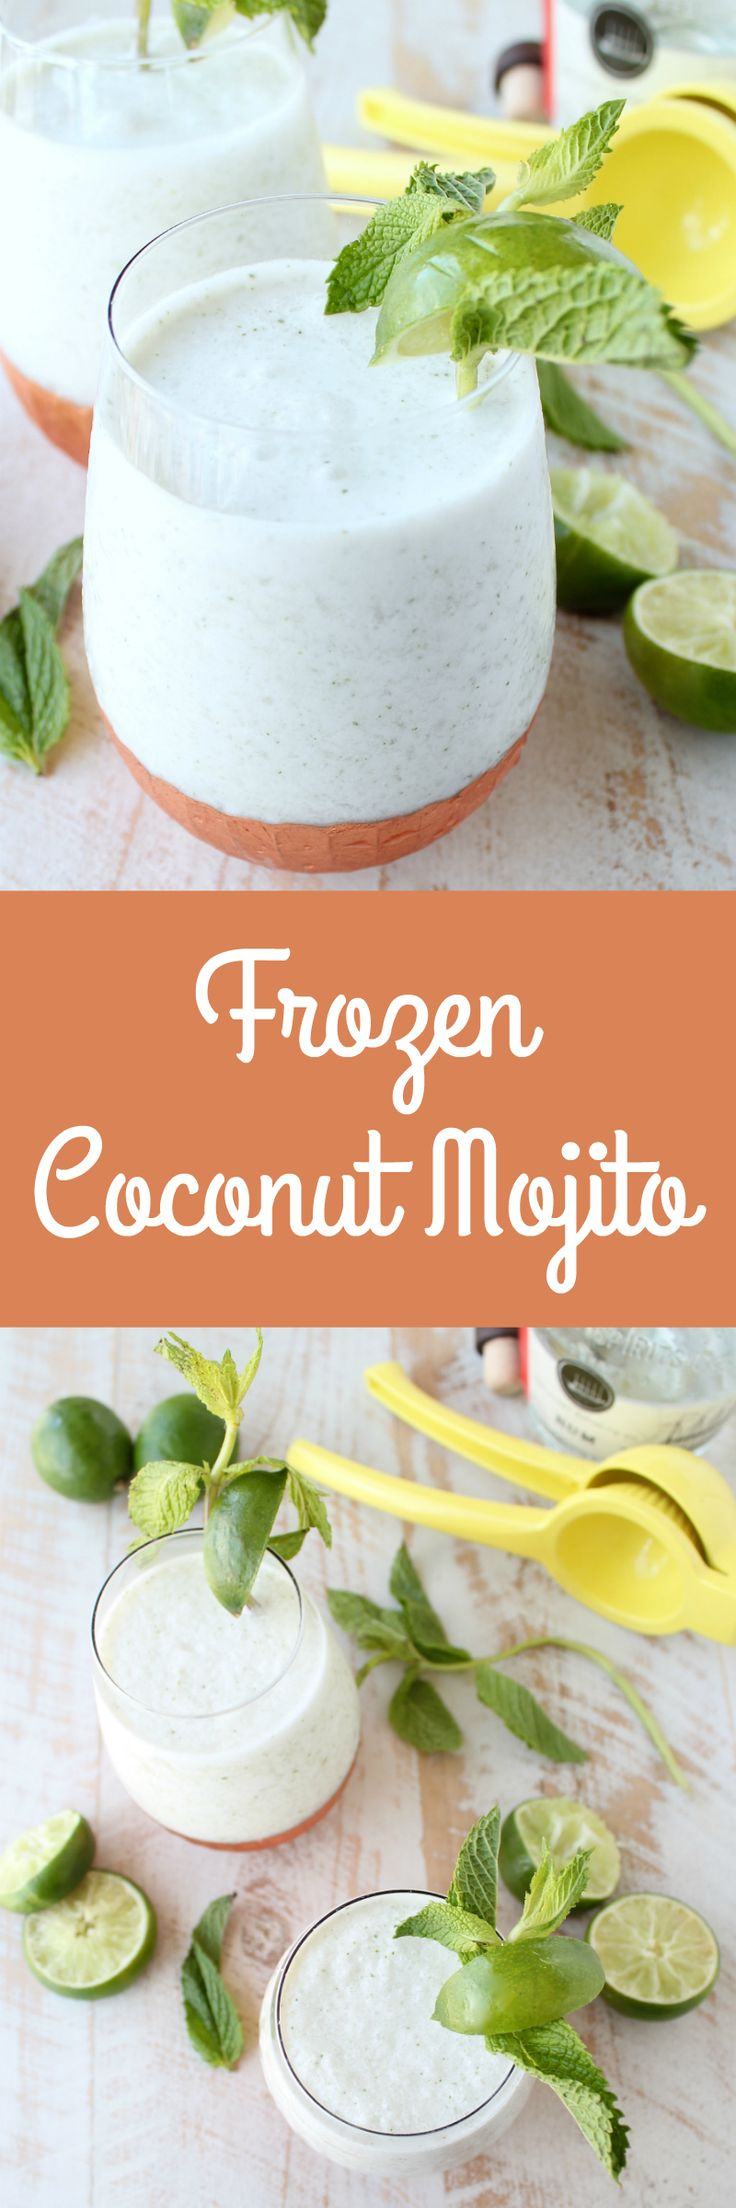 The mojito, a traditional Cuban cocktail, is given a summer twist in this Frozen Coconut Mojito Recipe, perfect for sipping poolside or at a BBQ served in World Market Copper Stemless Wine Glasses! #WorldMarketTribe